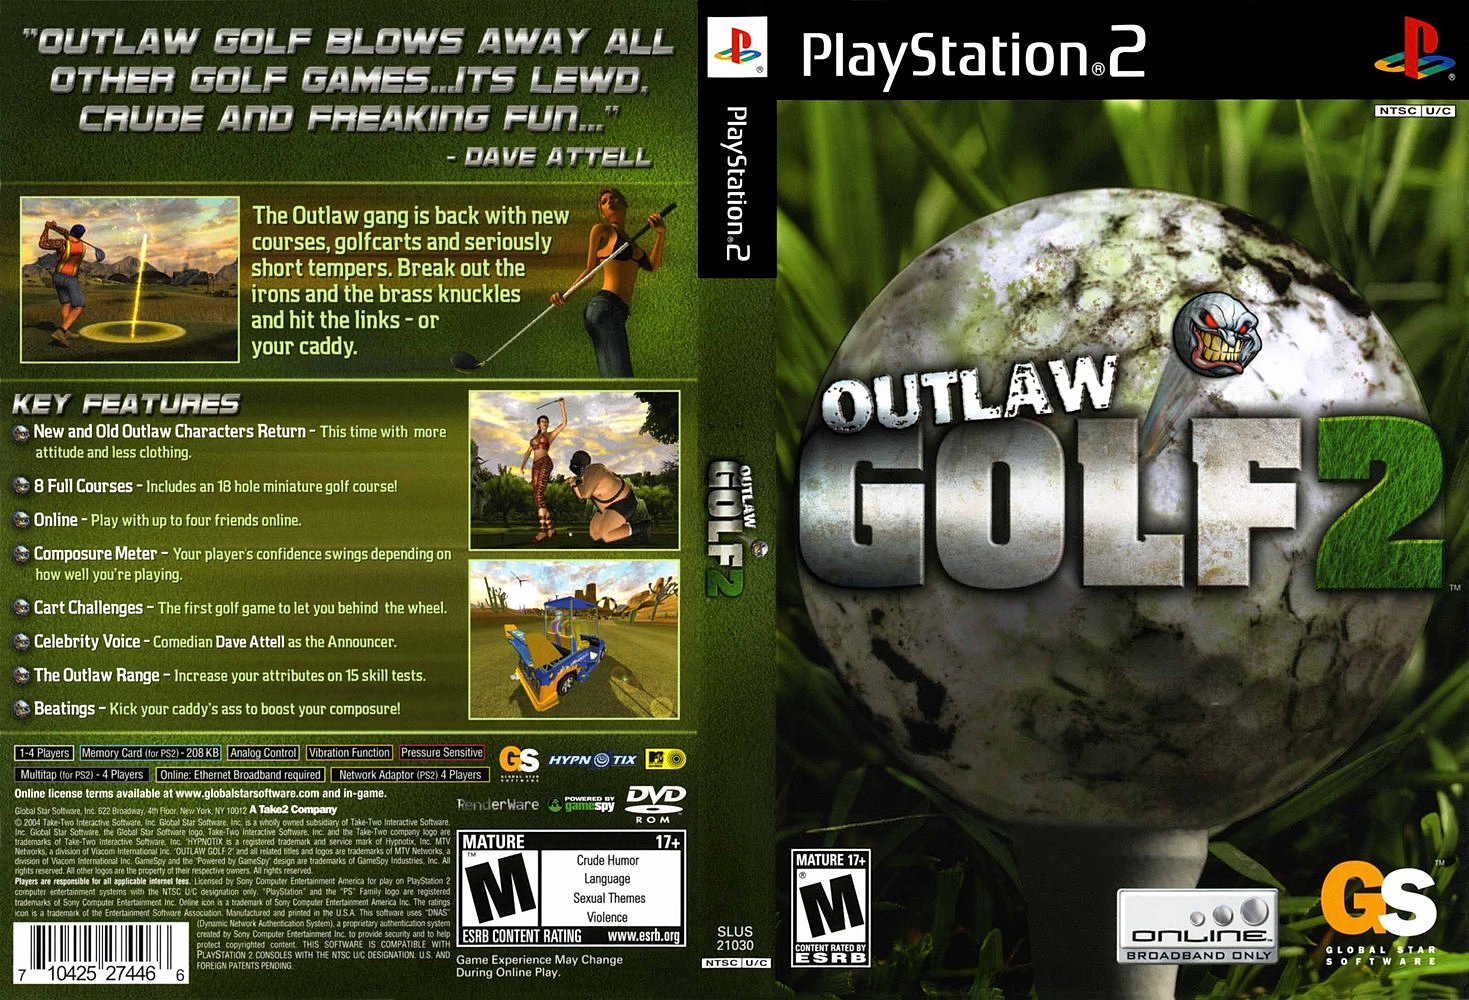 Outlaw golf 2 girls nude sex pic